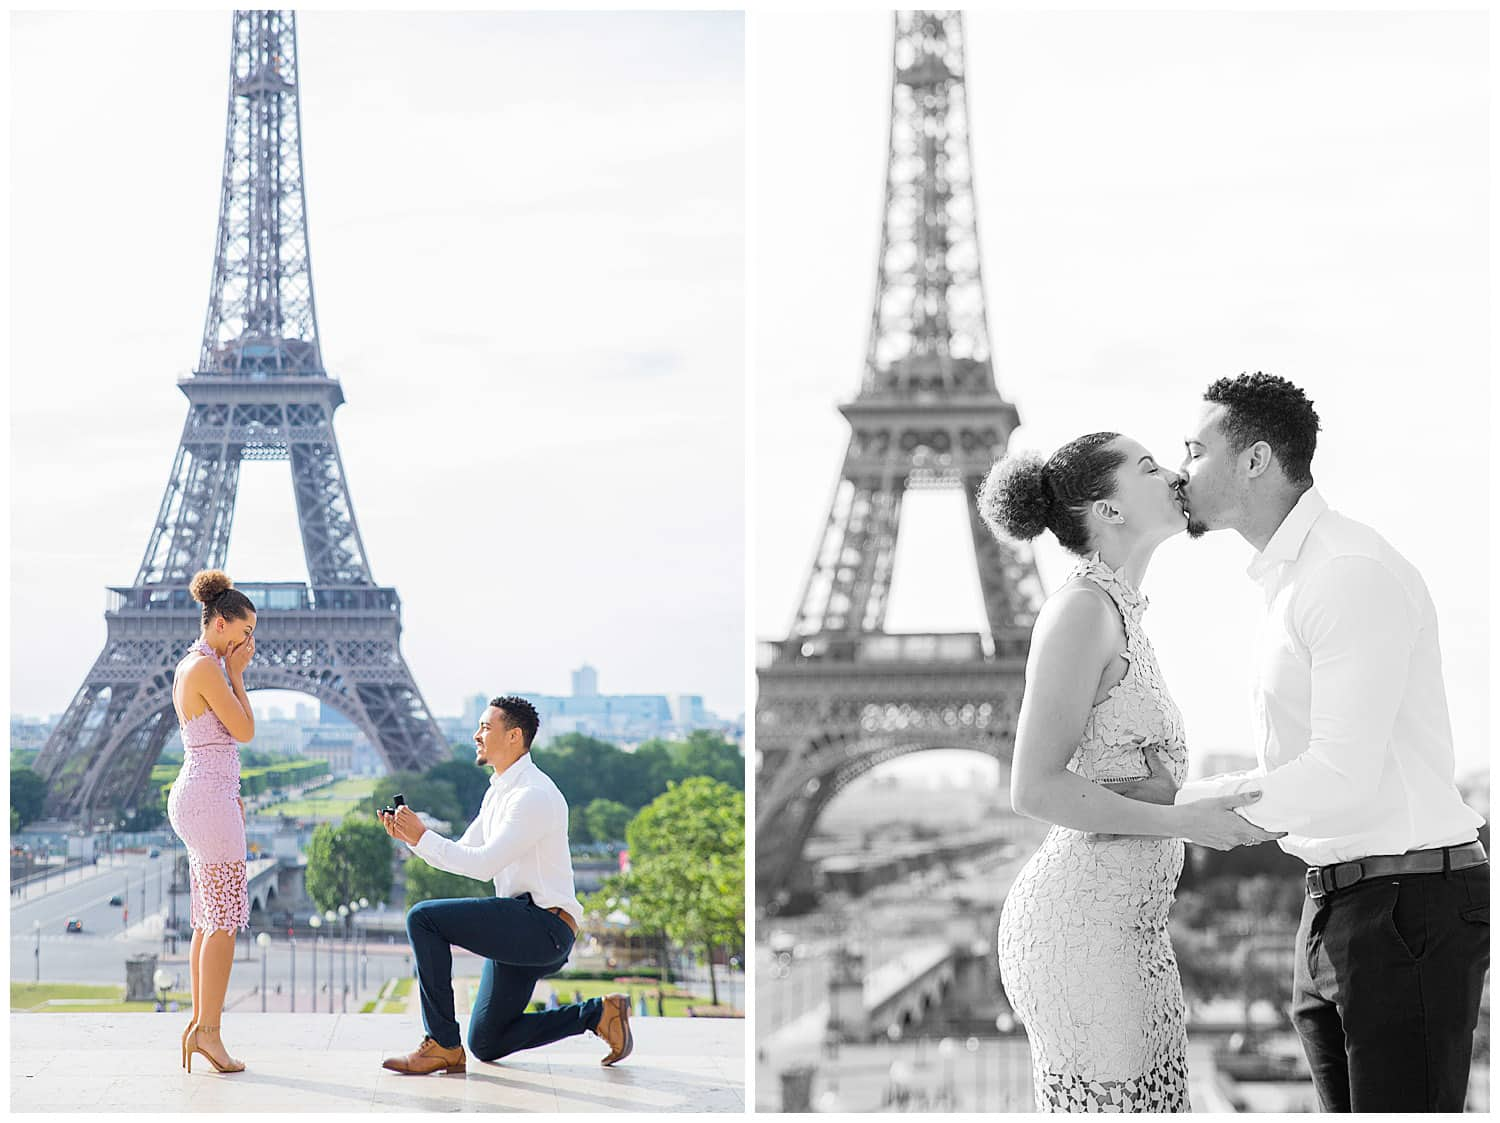 Marie-Calfopoulos-Paris-Photographer-elopement-engagement-Eiffel-Tower-Trocadero-surprise-wedding-marriage-proposal_0014